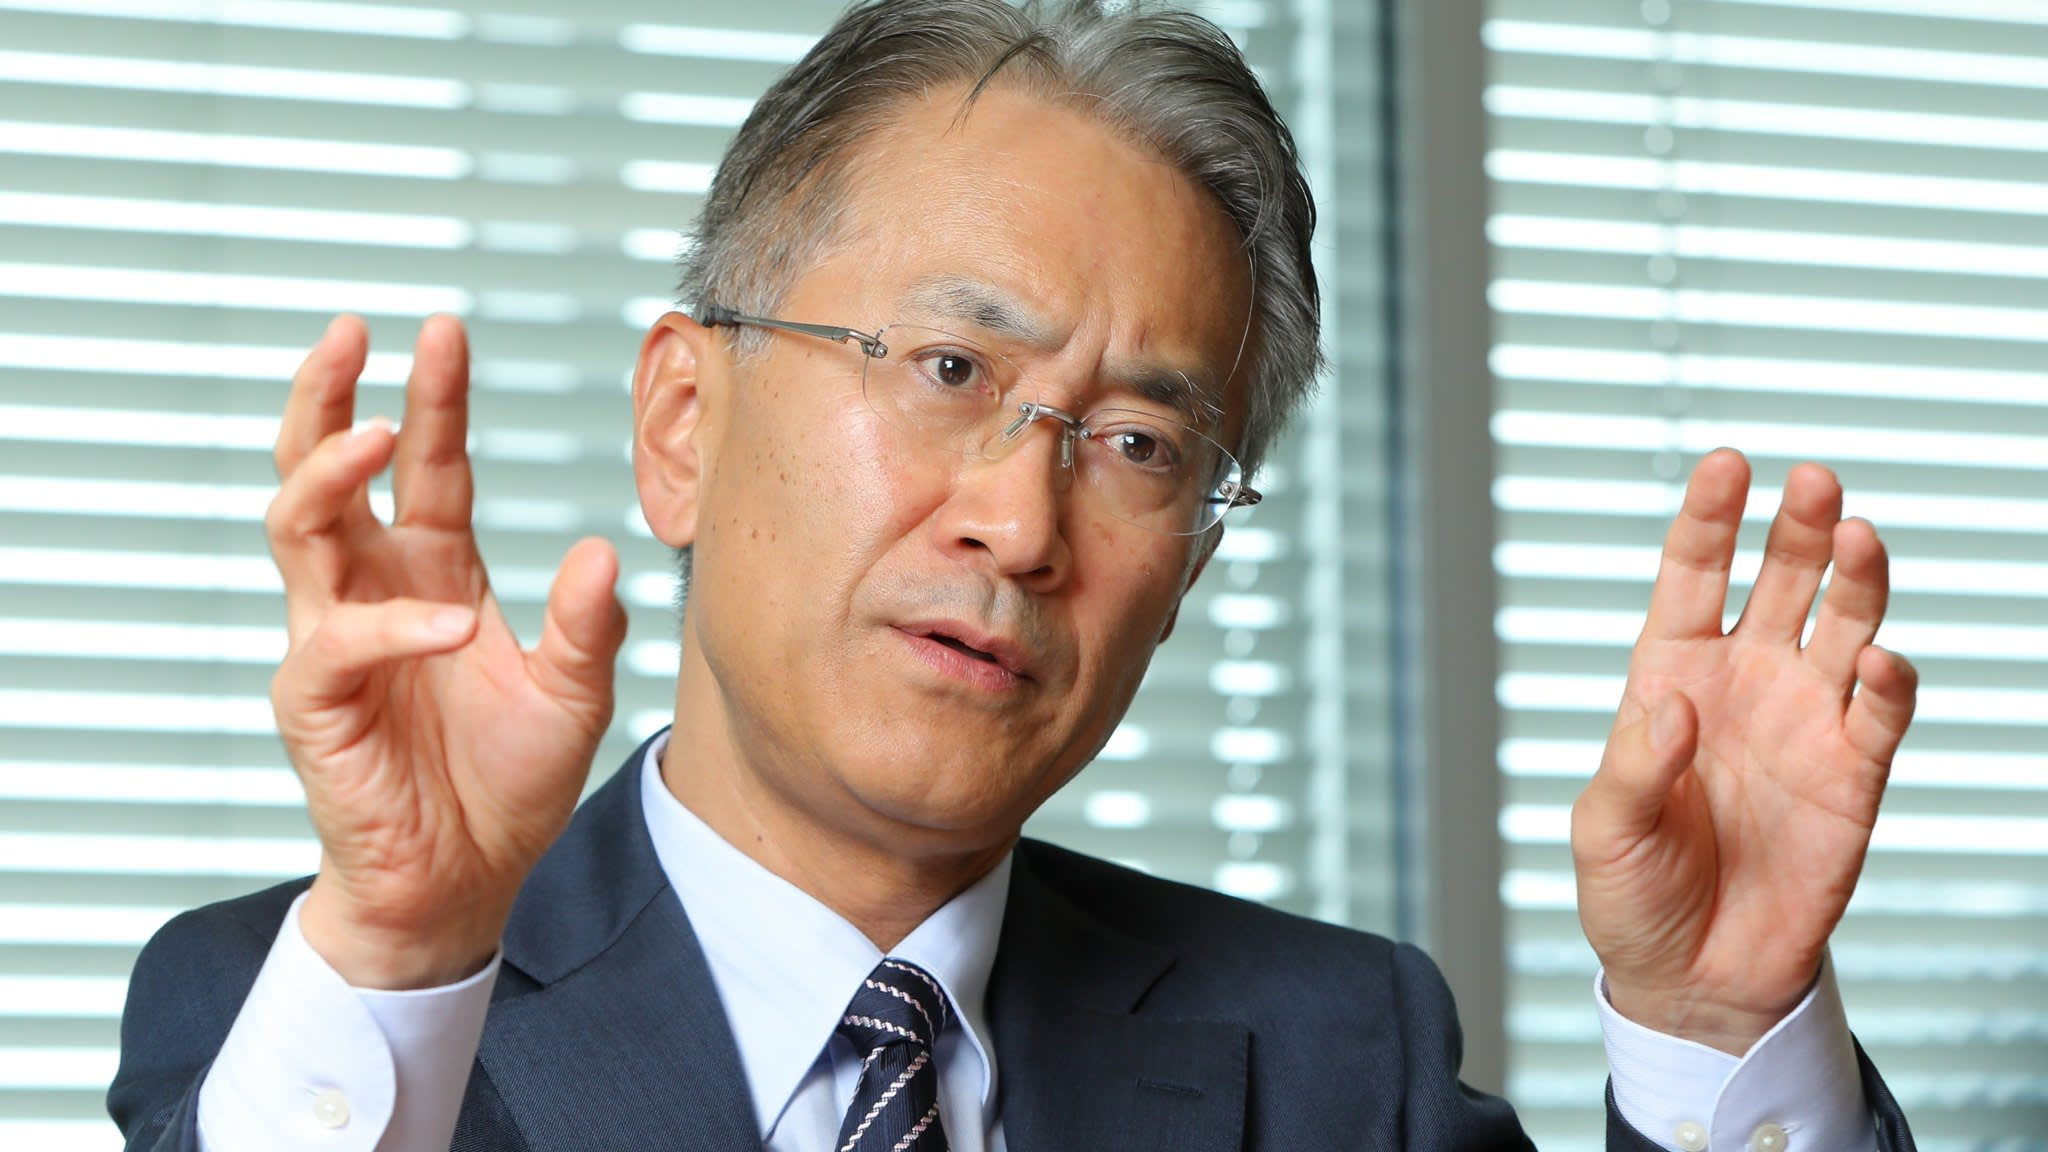 Sony chief aims to recapture spirit of innovation